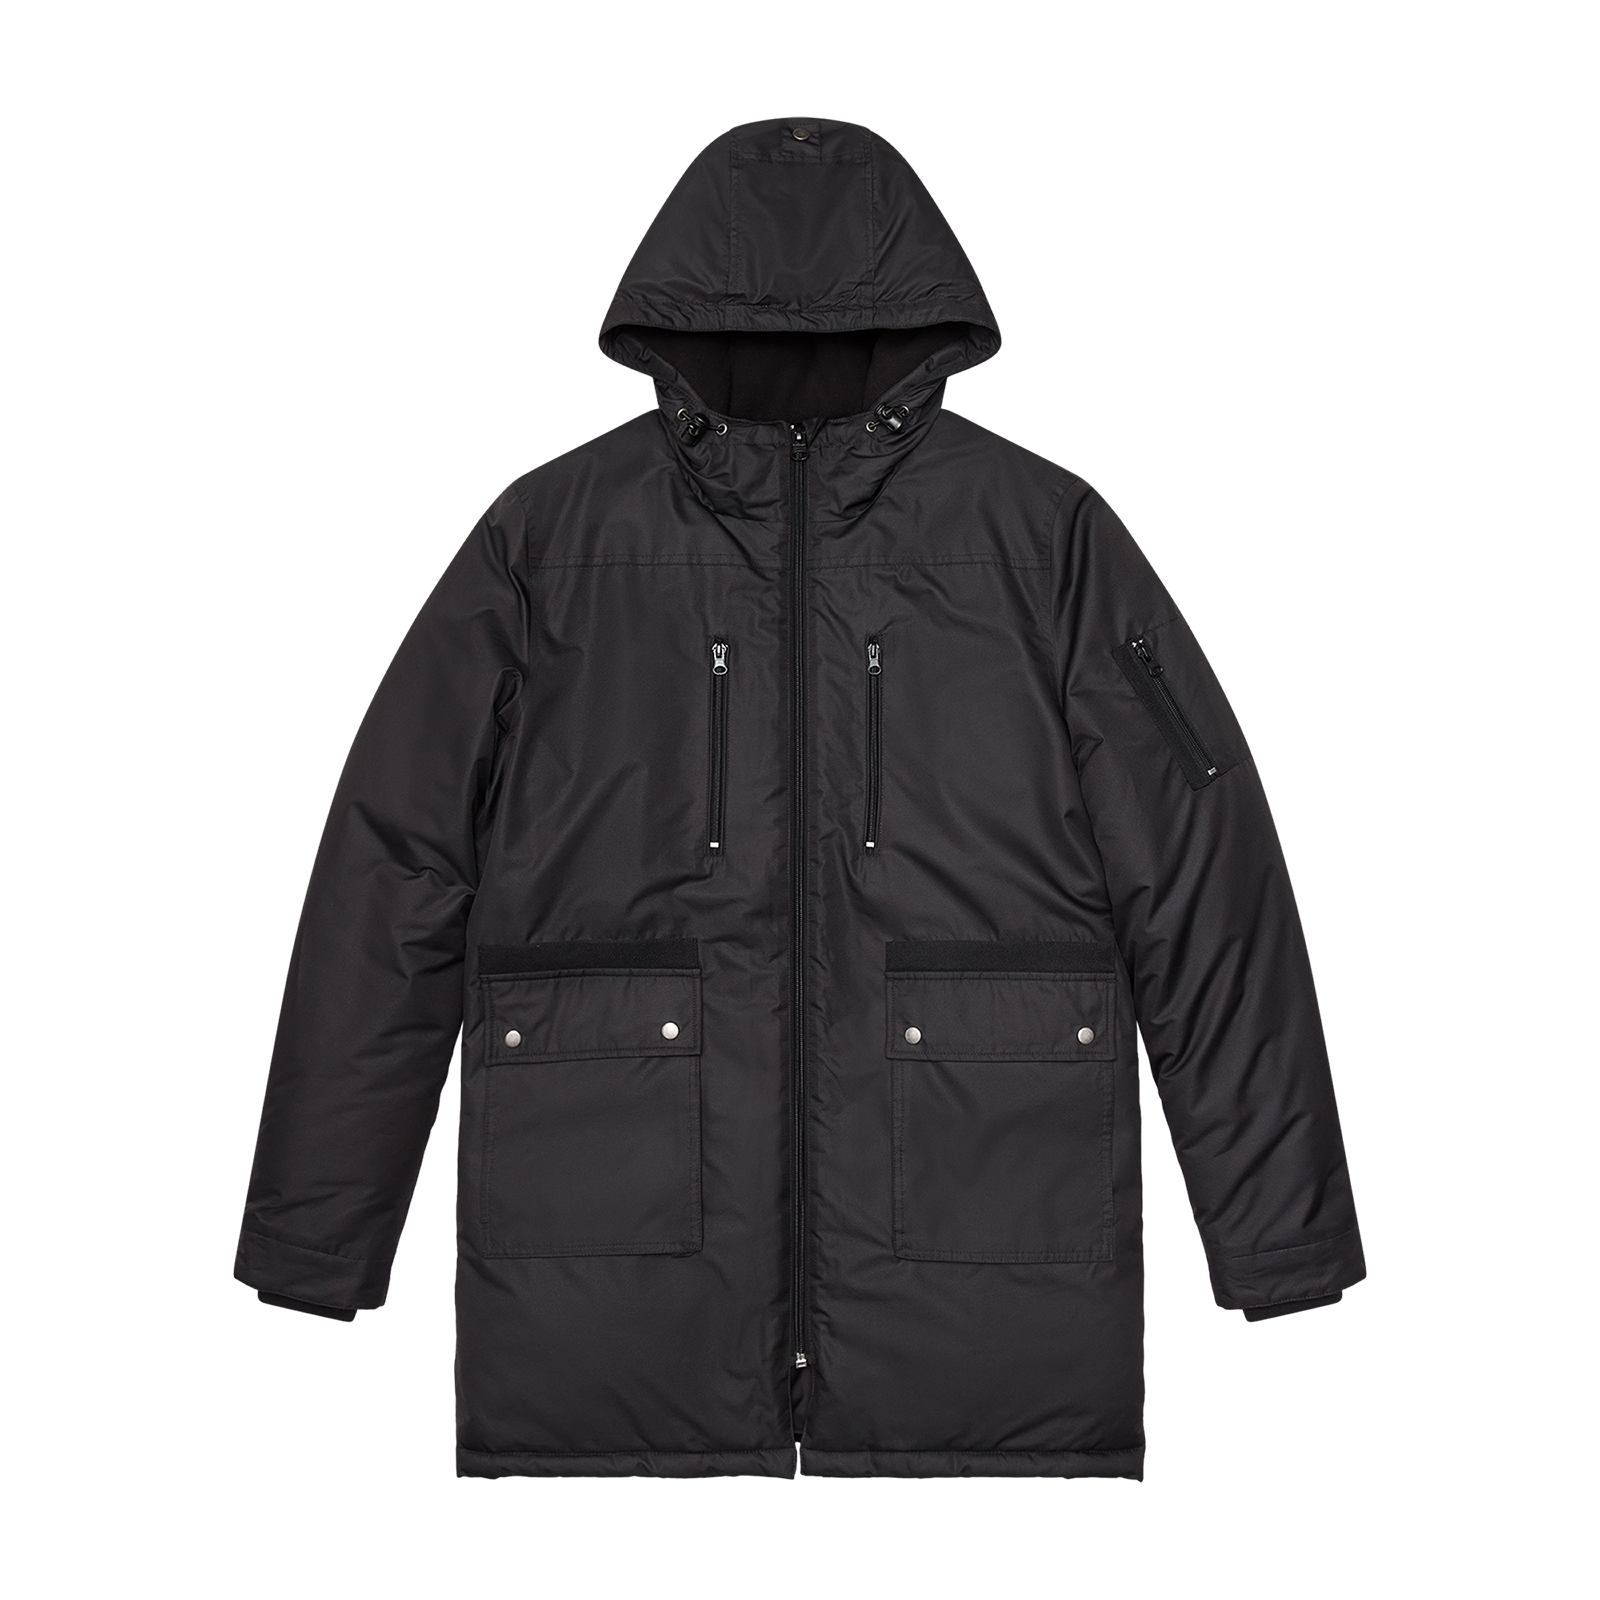 Black coat product photo